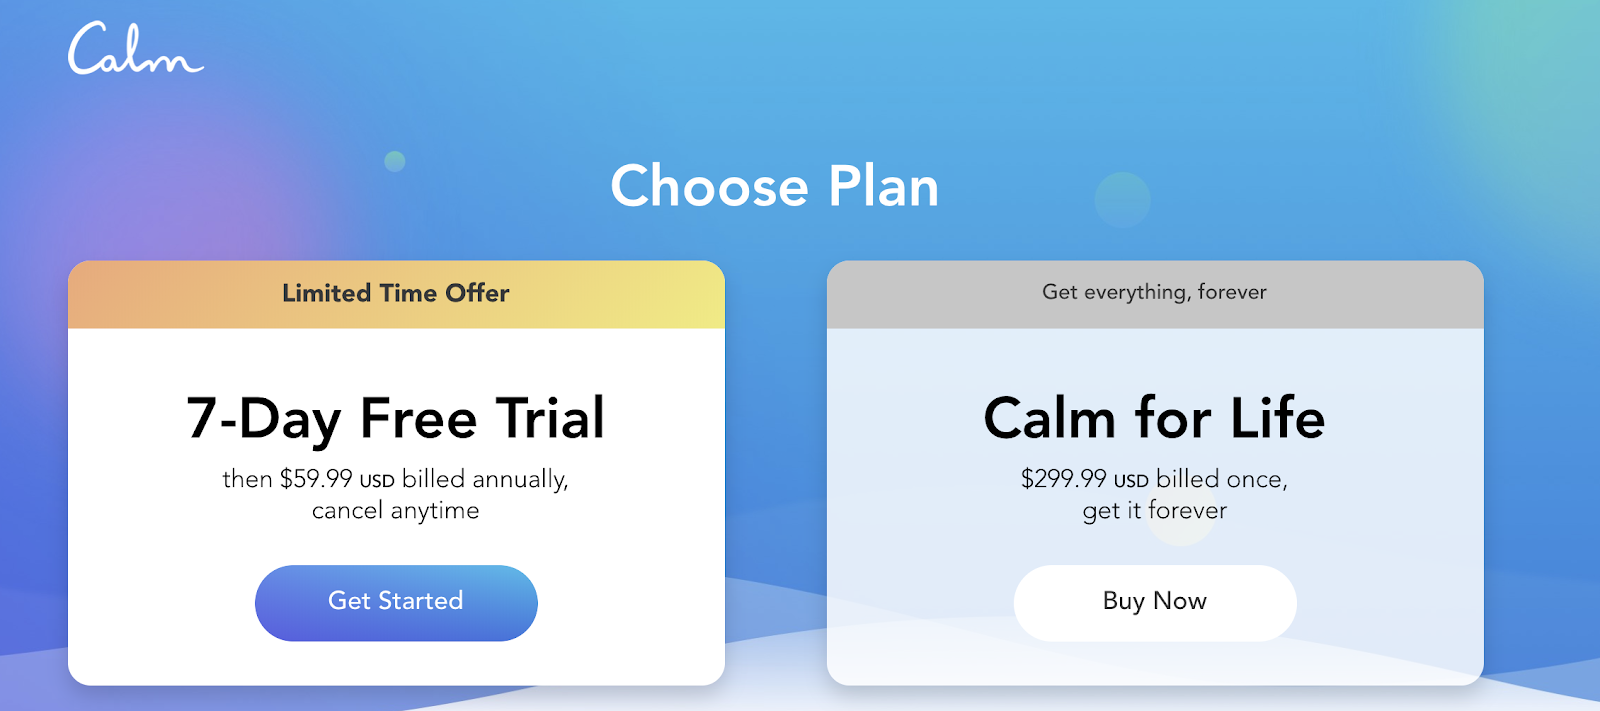 No monthly plan shows on their website